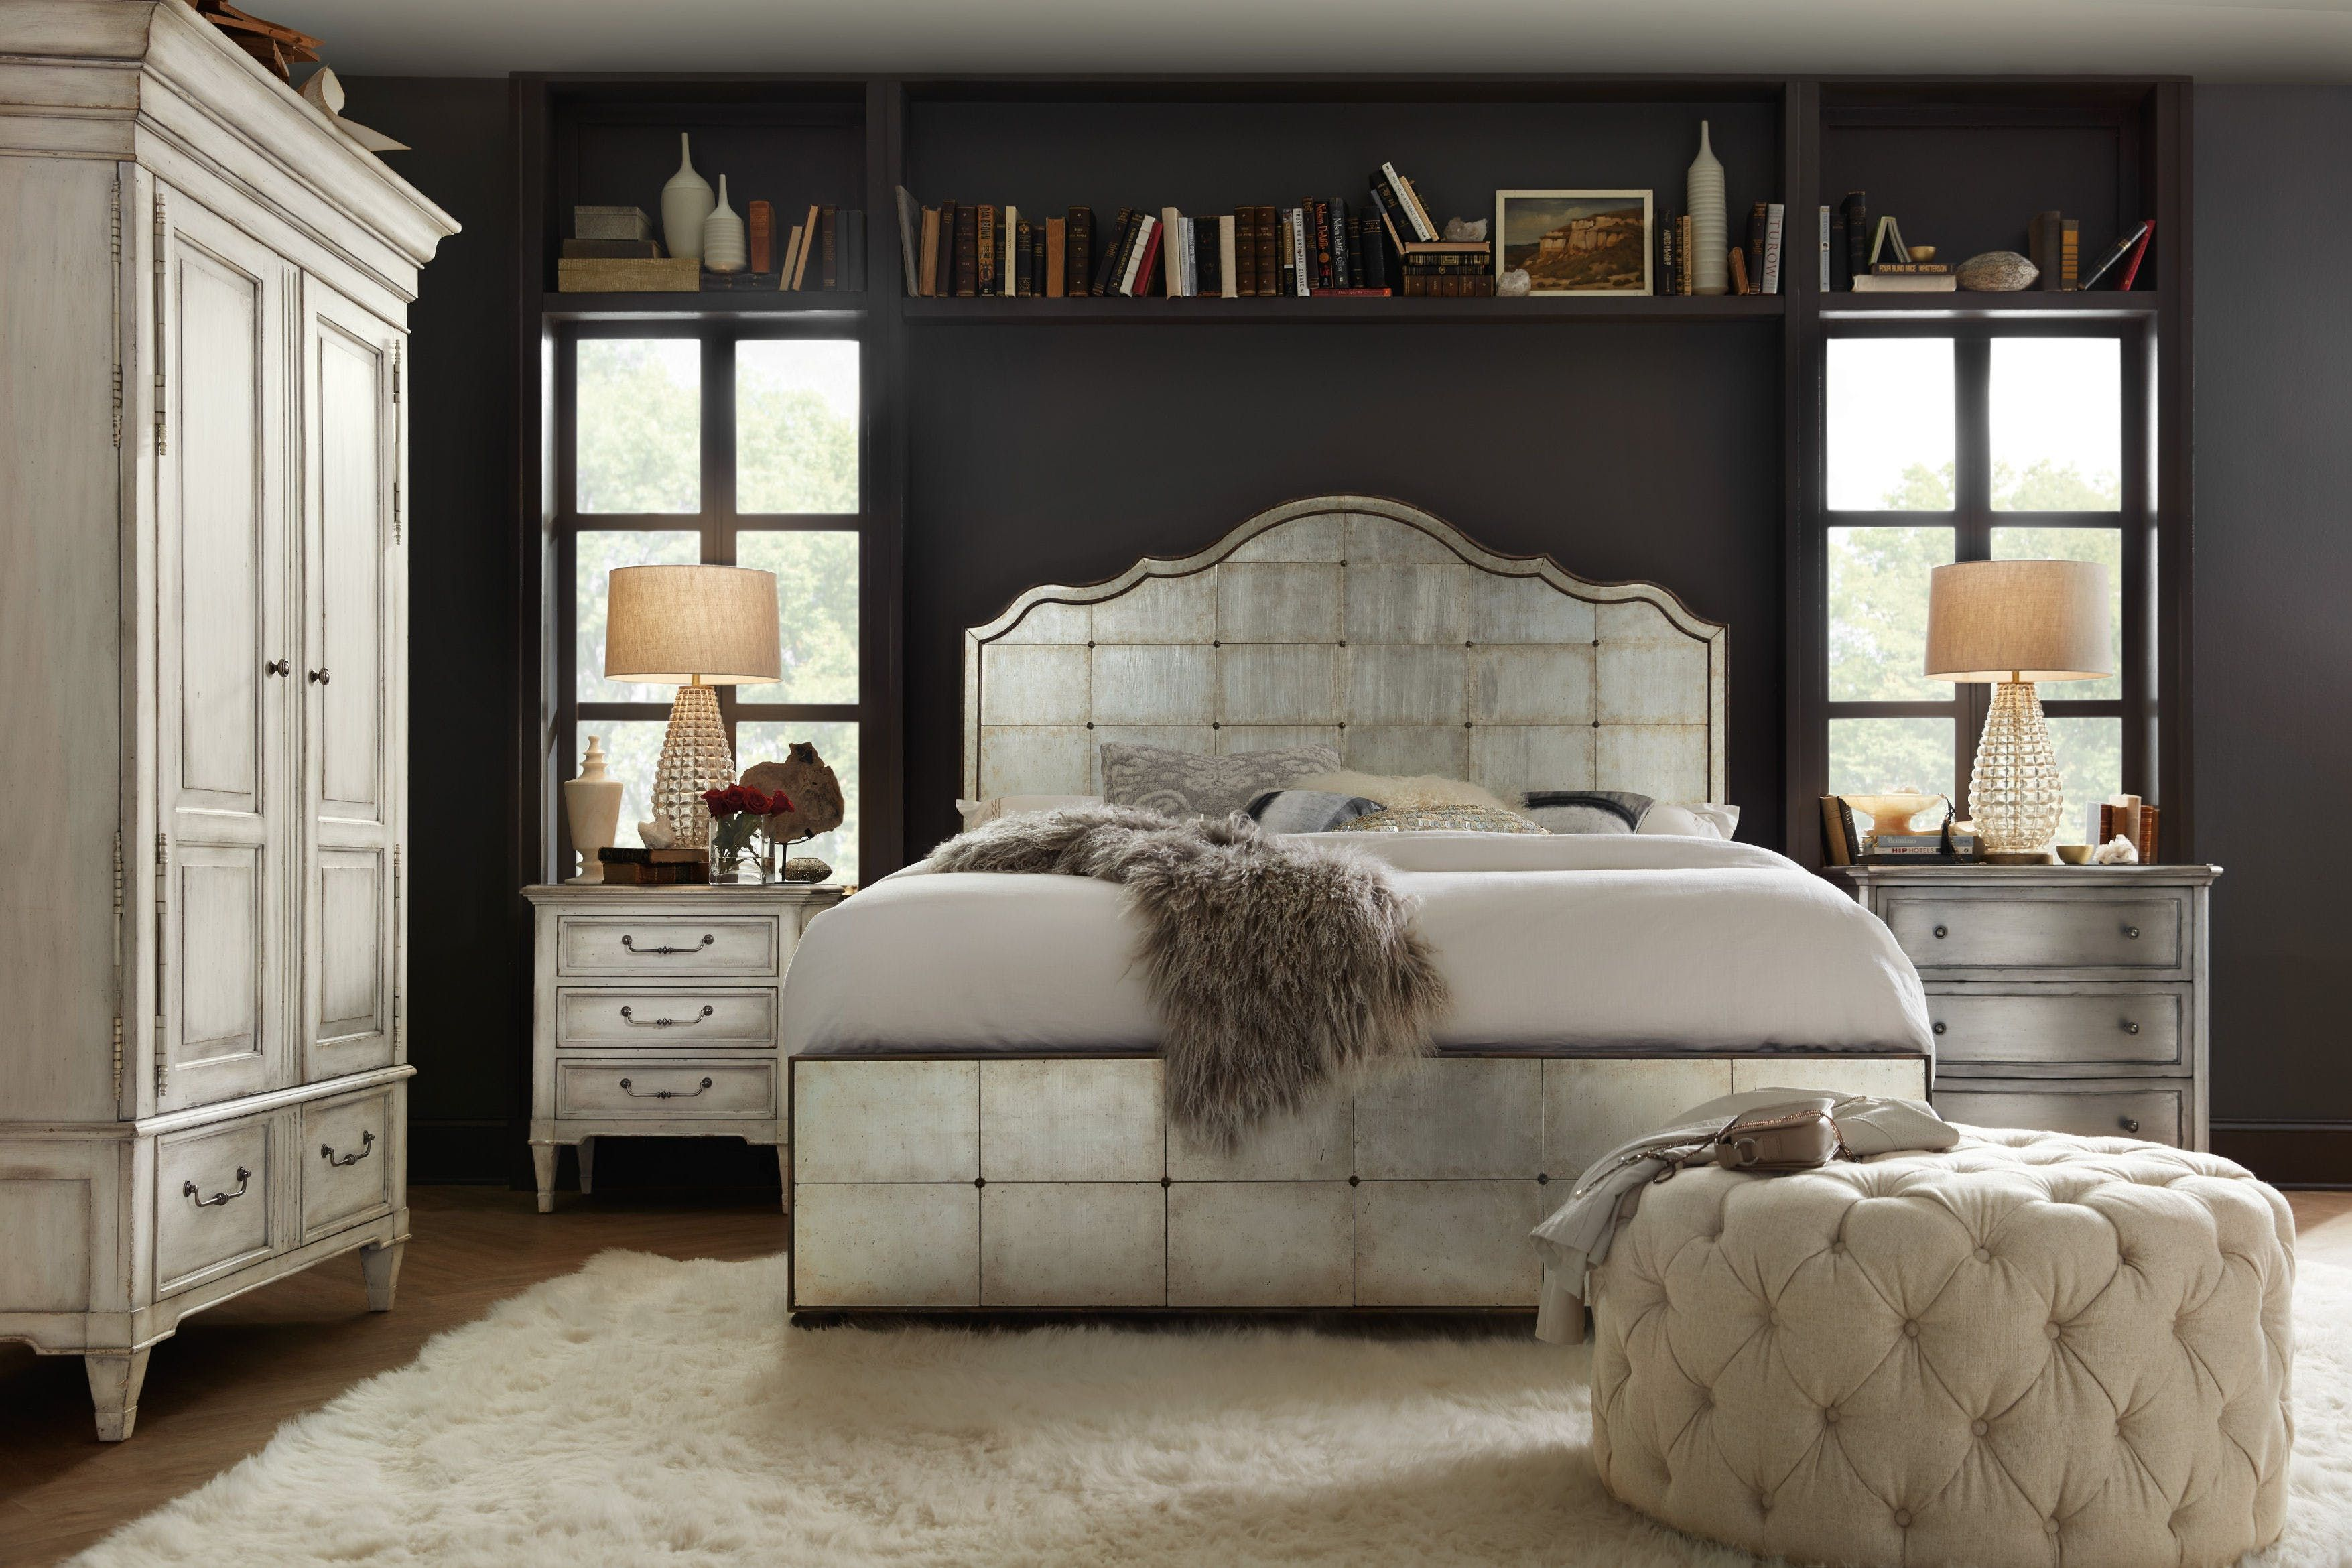 dallas bed collection furniture beach full of youth sanctuary bedroom outlet hooker collections size dresser kids